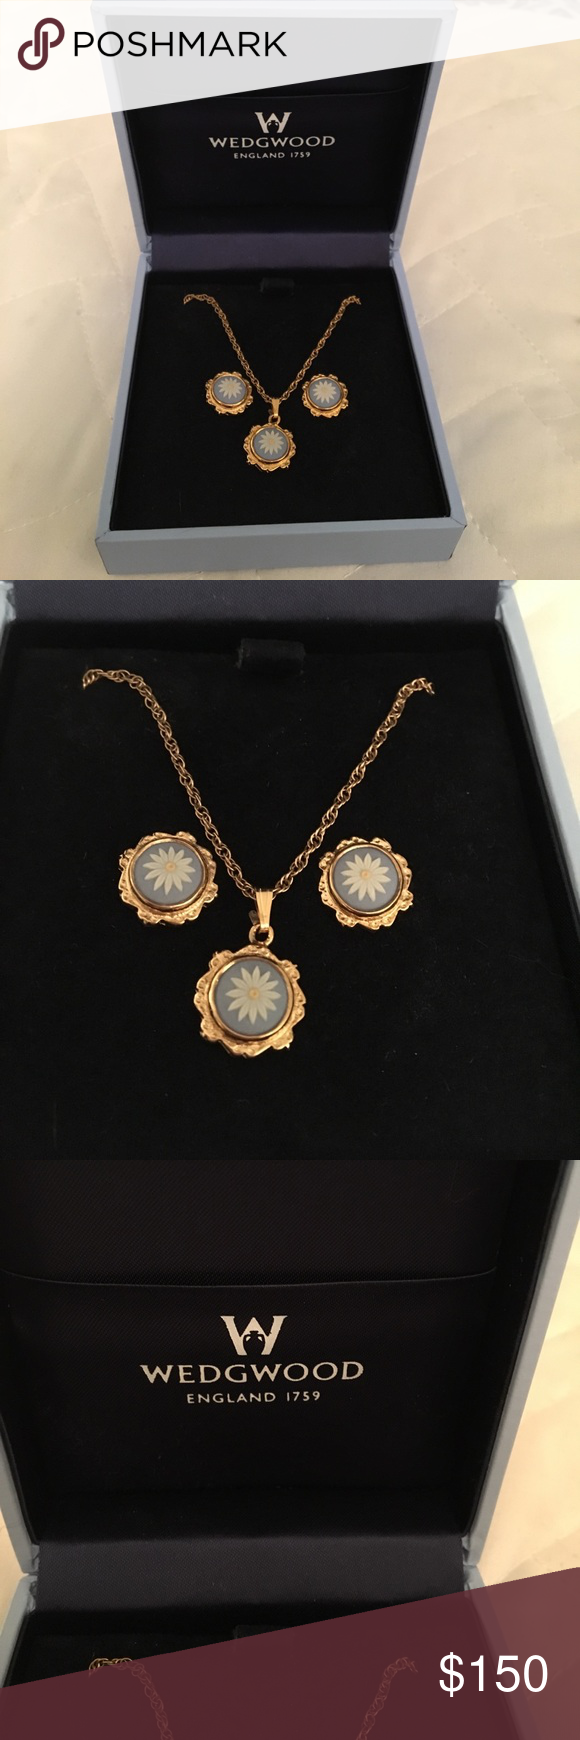 Genuine vintage Wedgewood necklace earring set Rare!!! Super hard to find. From England Vintage Wedgewood daisy necklace and earring set. Comes in box. Perfect new condition. wedgewood Jewelry Earrings